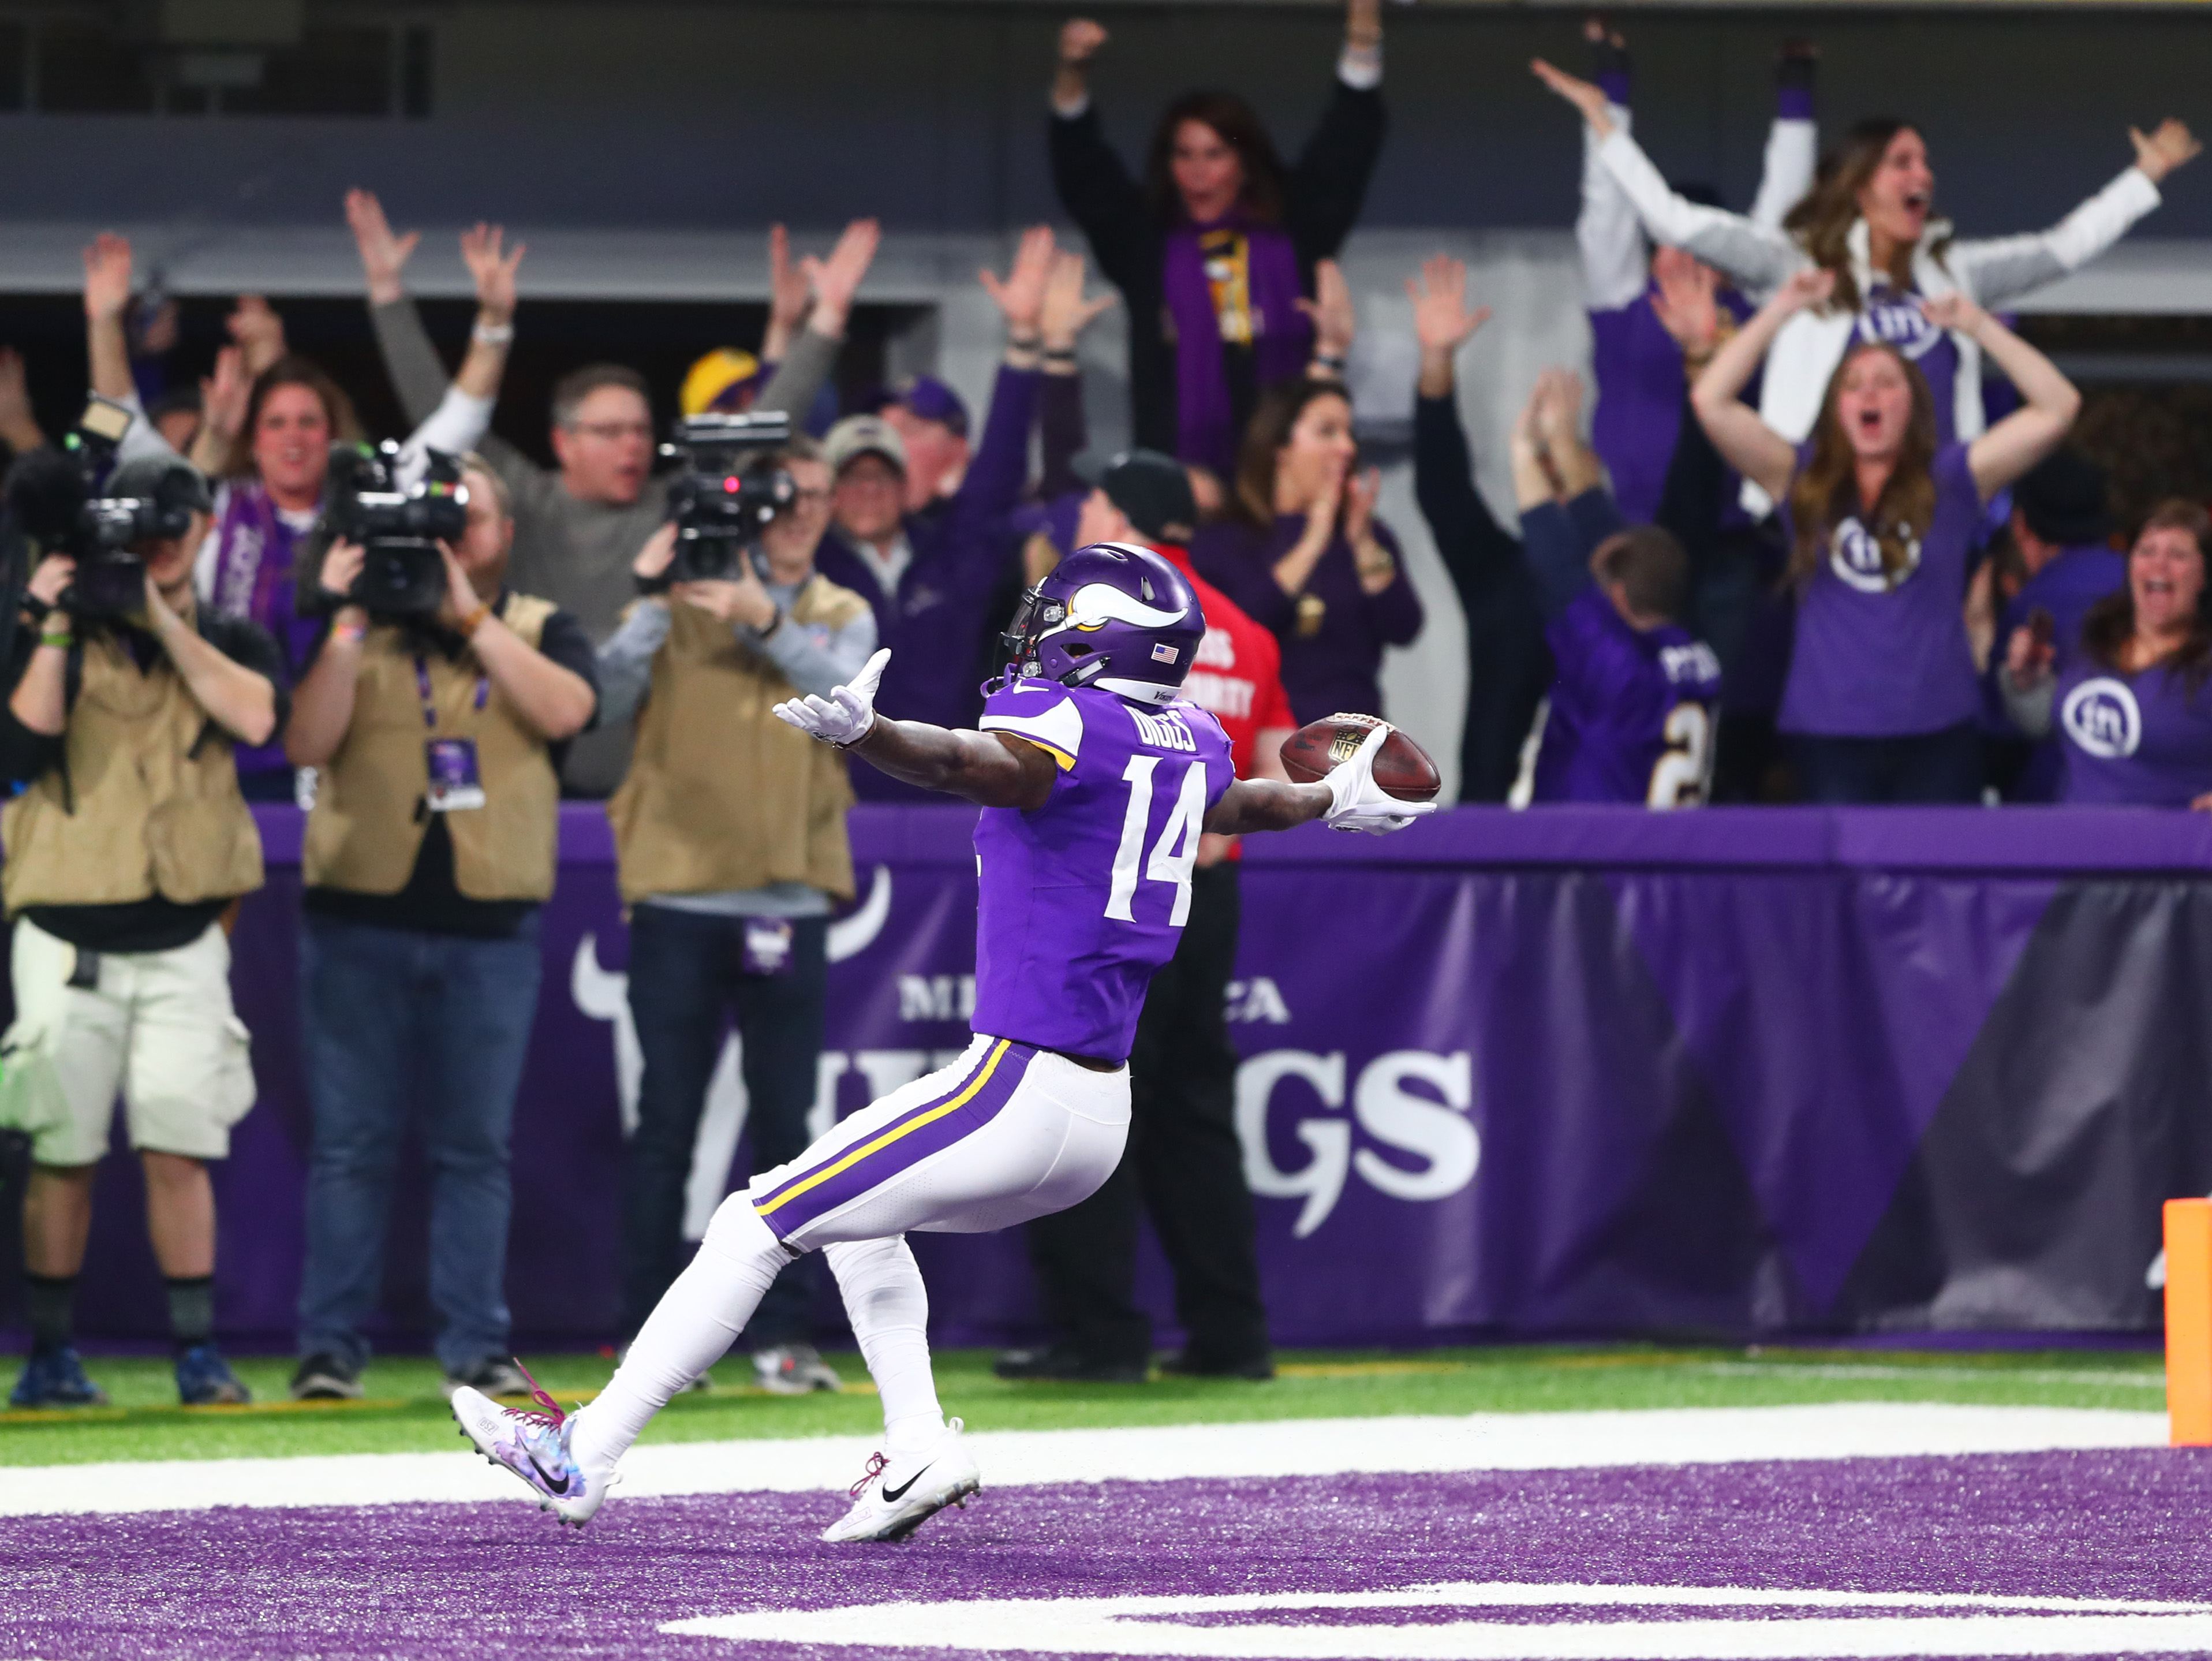 NFL: NFC Divisional Playoff-New Orleans Saints at Minnesota Vikings